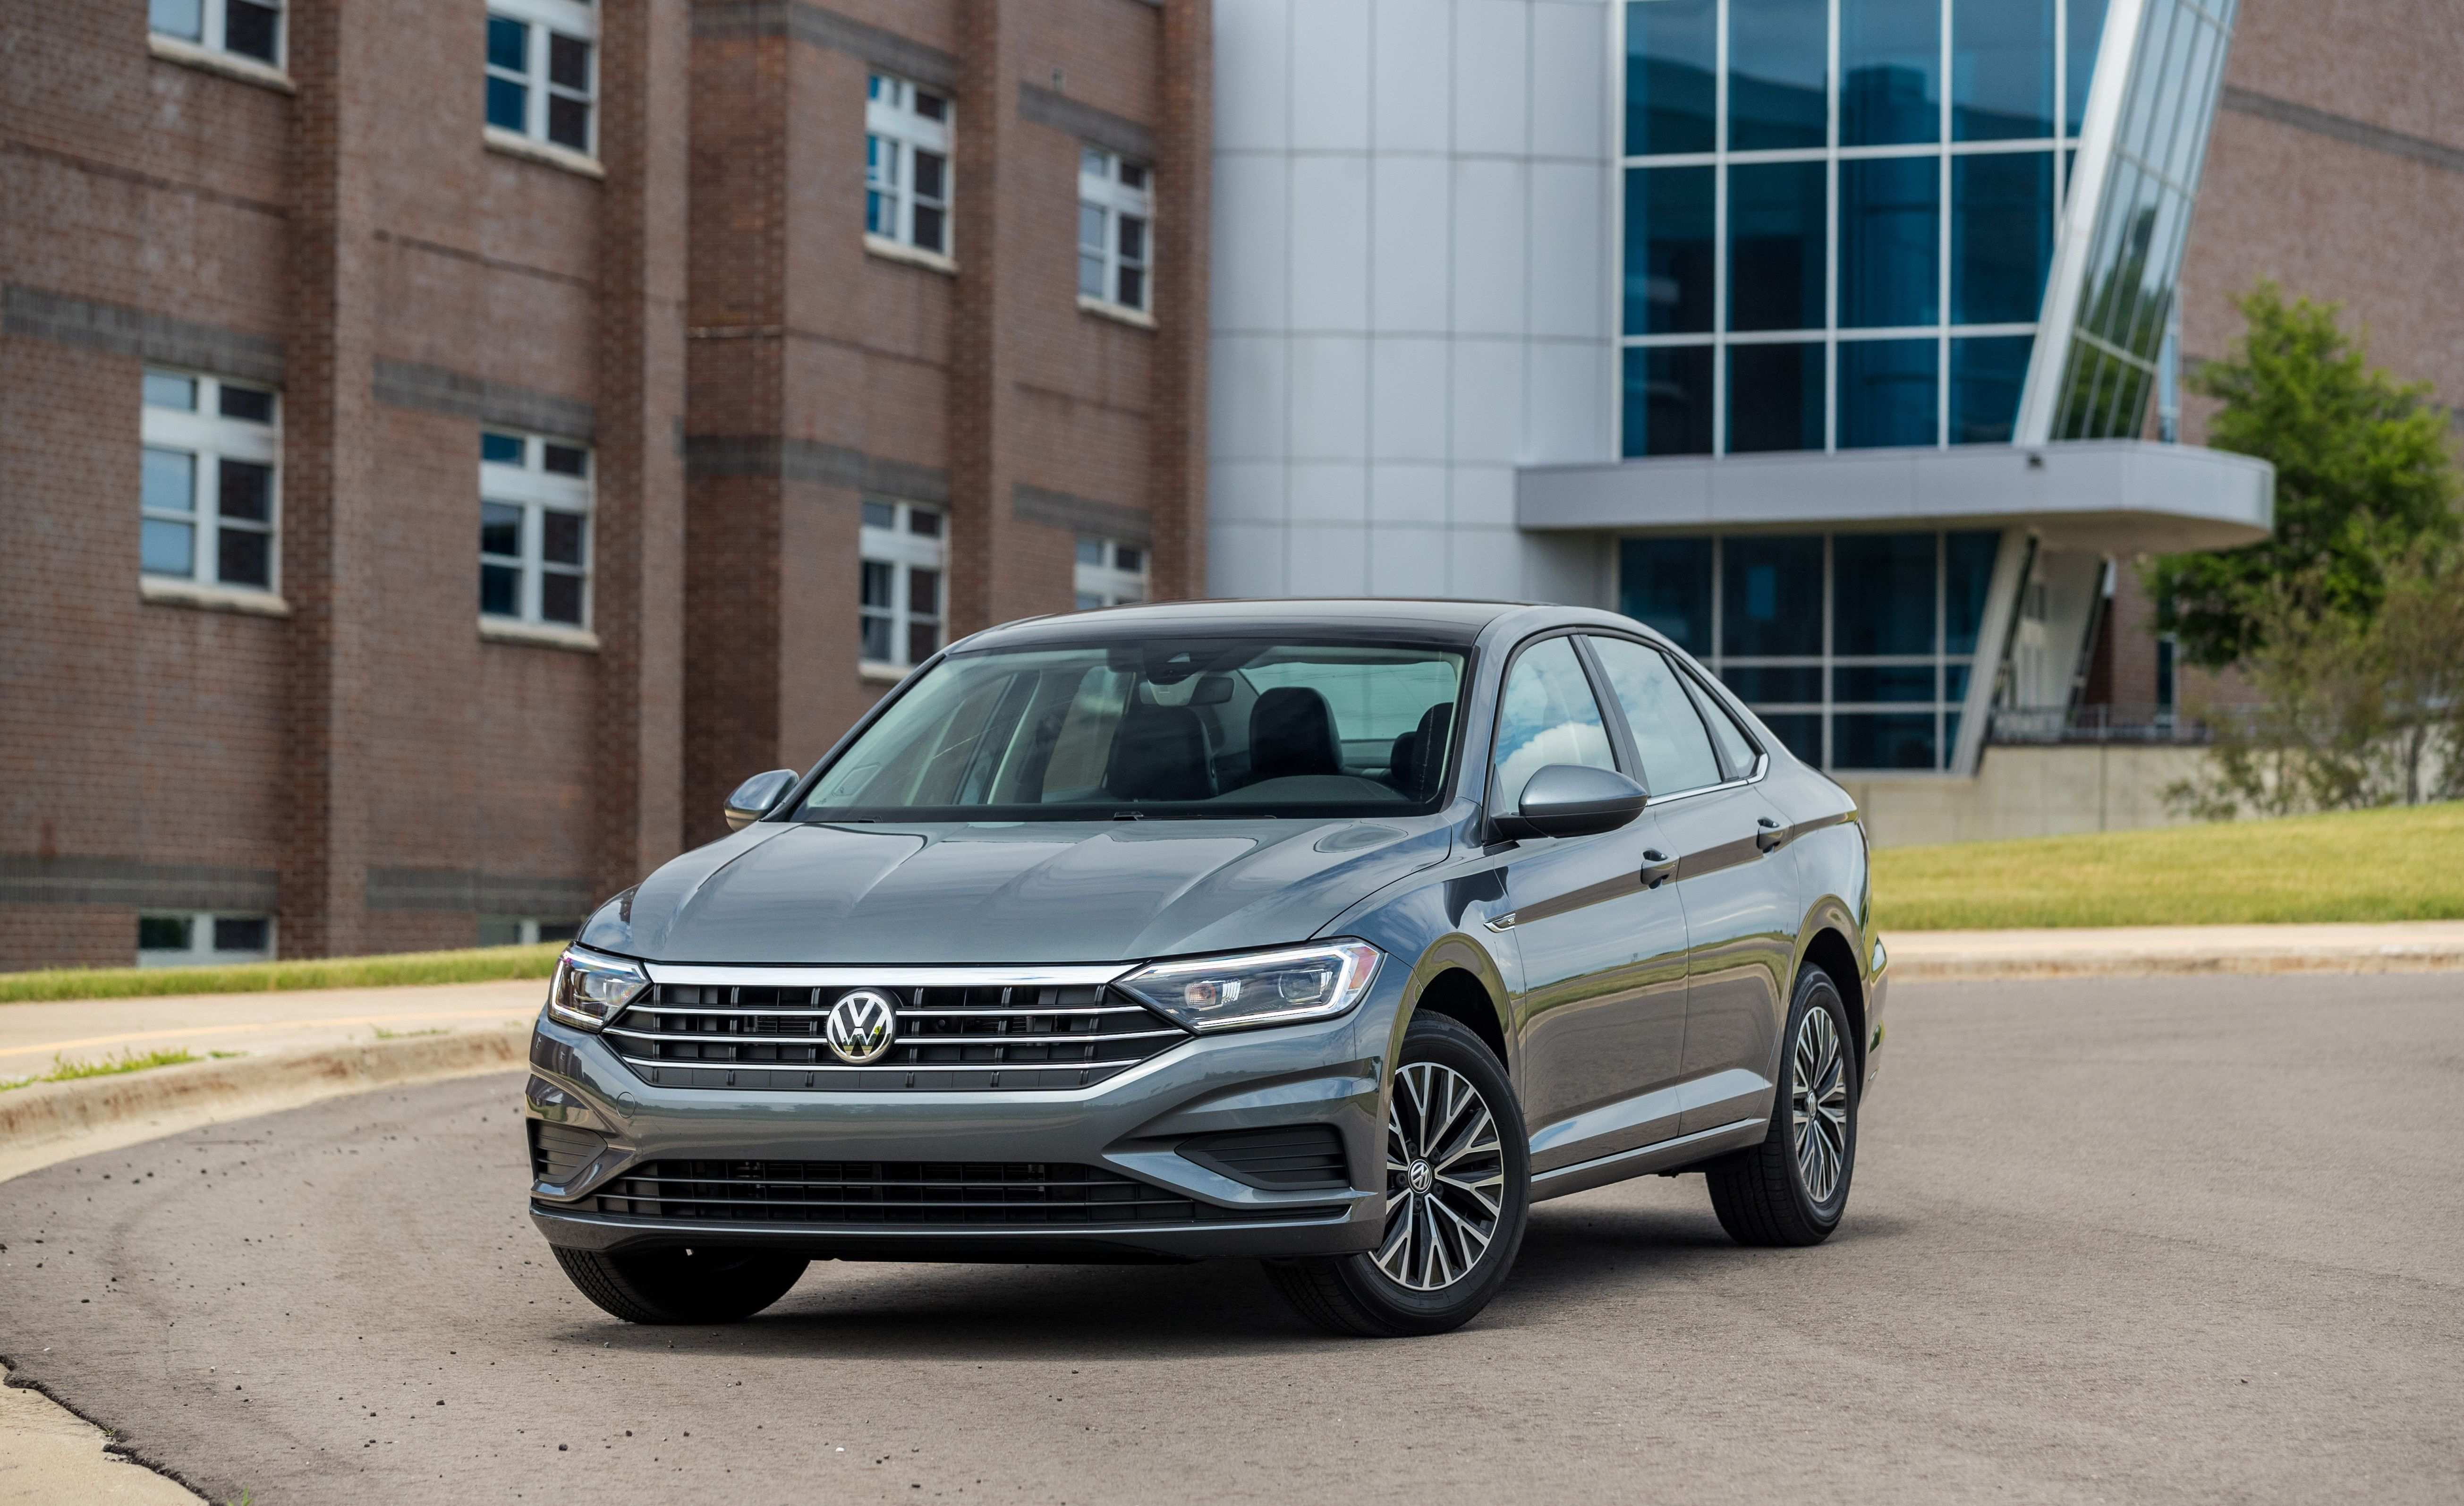 52 All New The Pictures Of 2019 Volkswagen Jetta Spesification Redesign by The Pictures Of 2019 Volkswagen Jetta Spesification